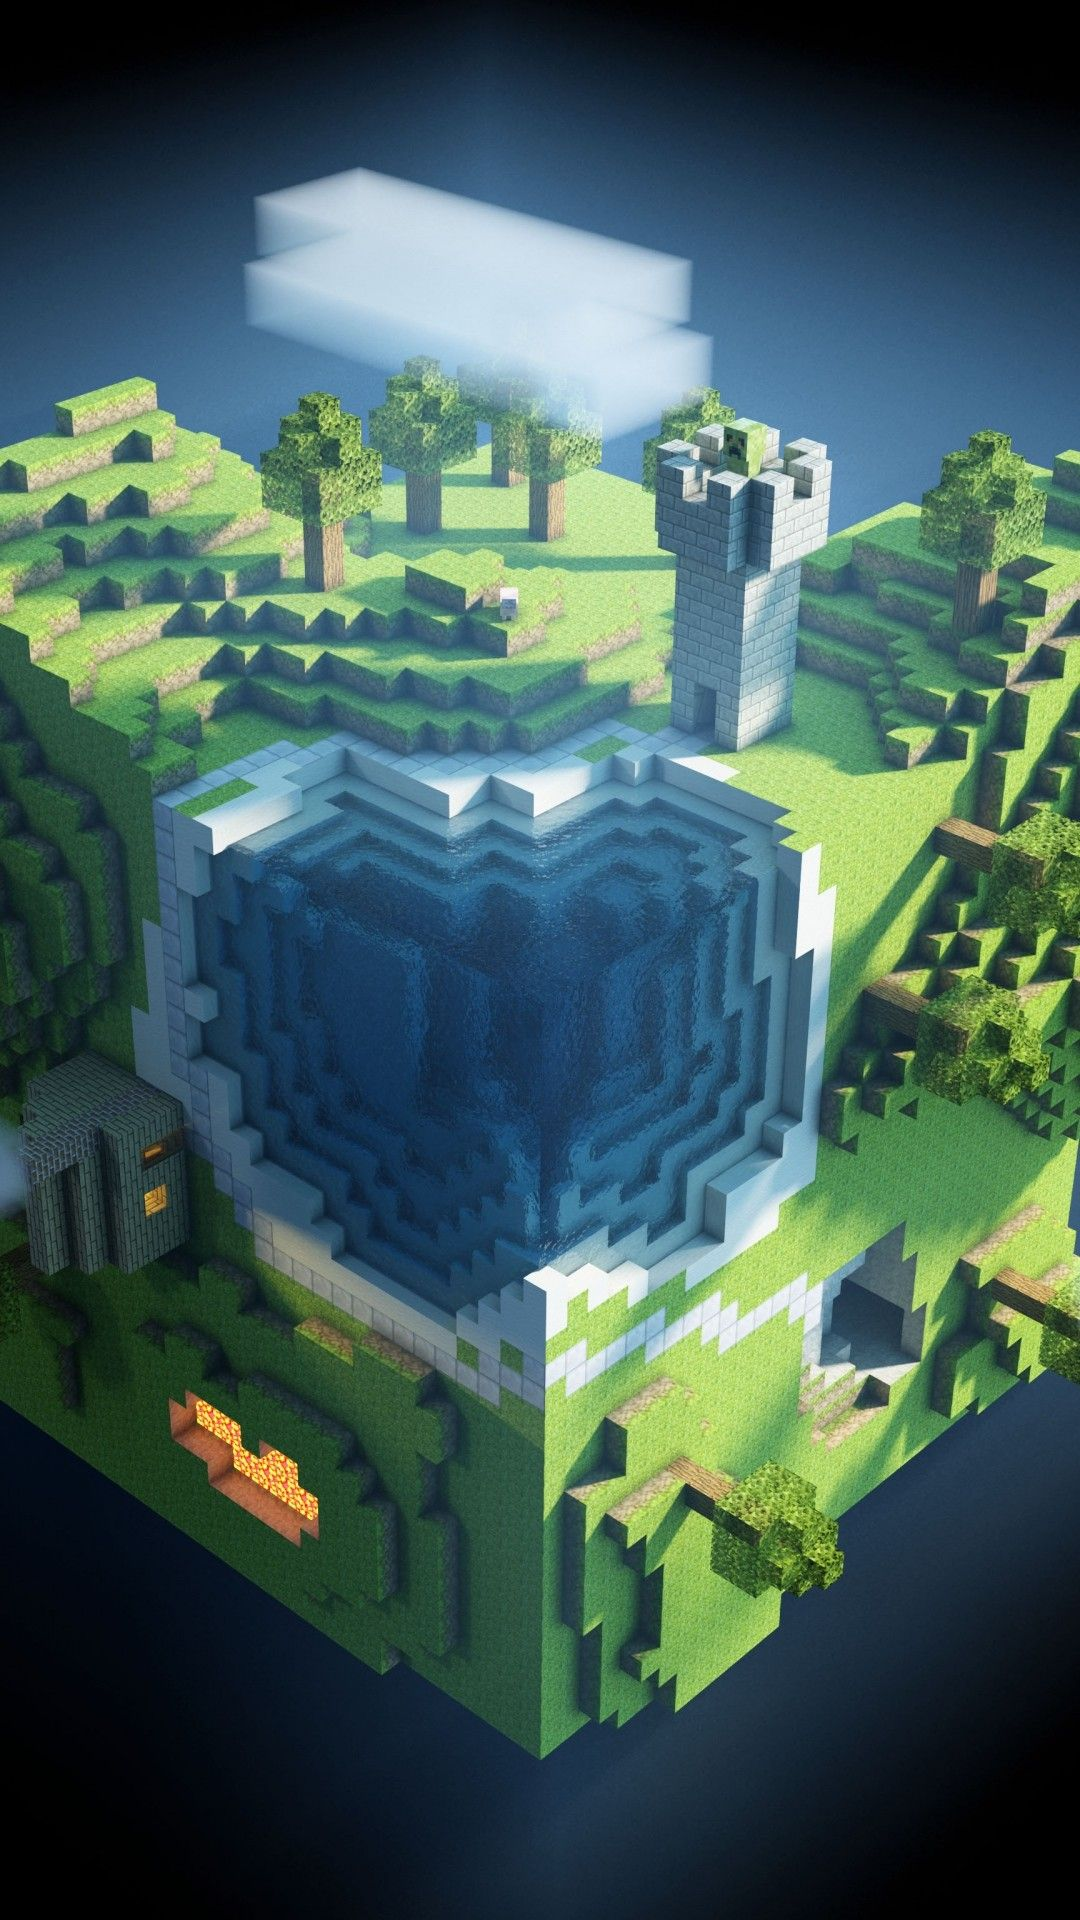 1080x1920 75+ Minecraft Background Wallpapers on WallpaperPlay